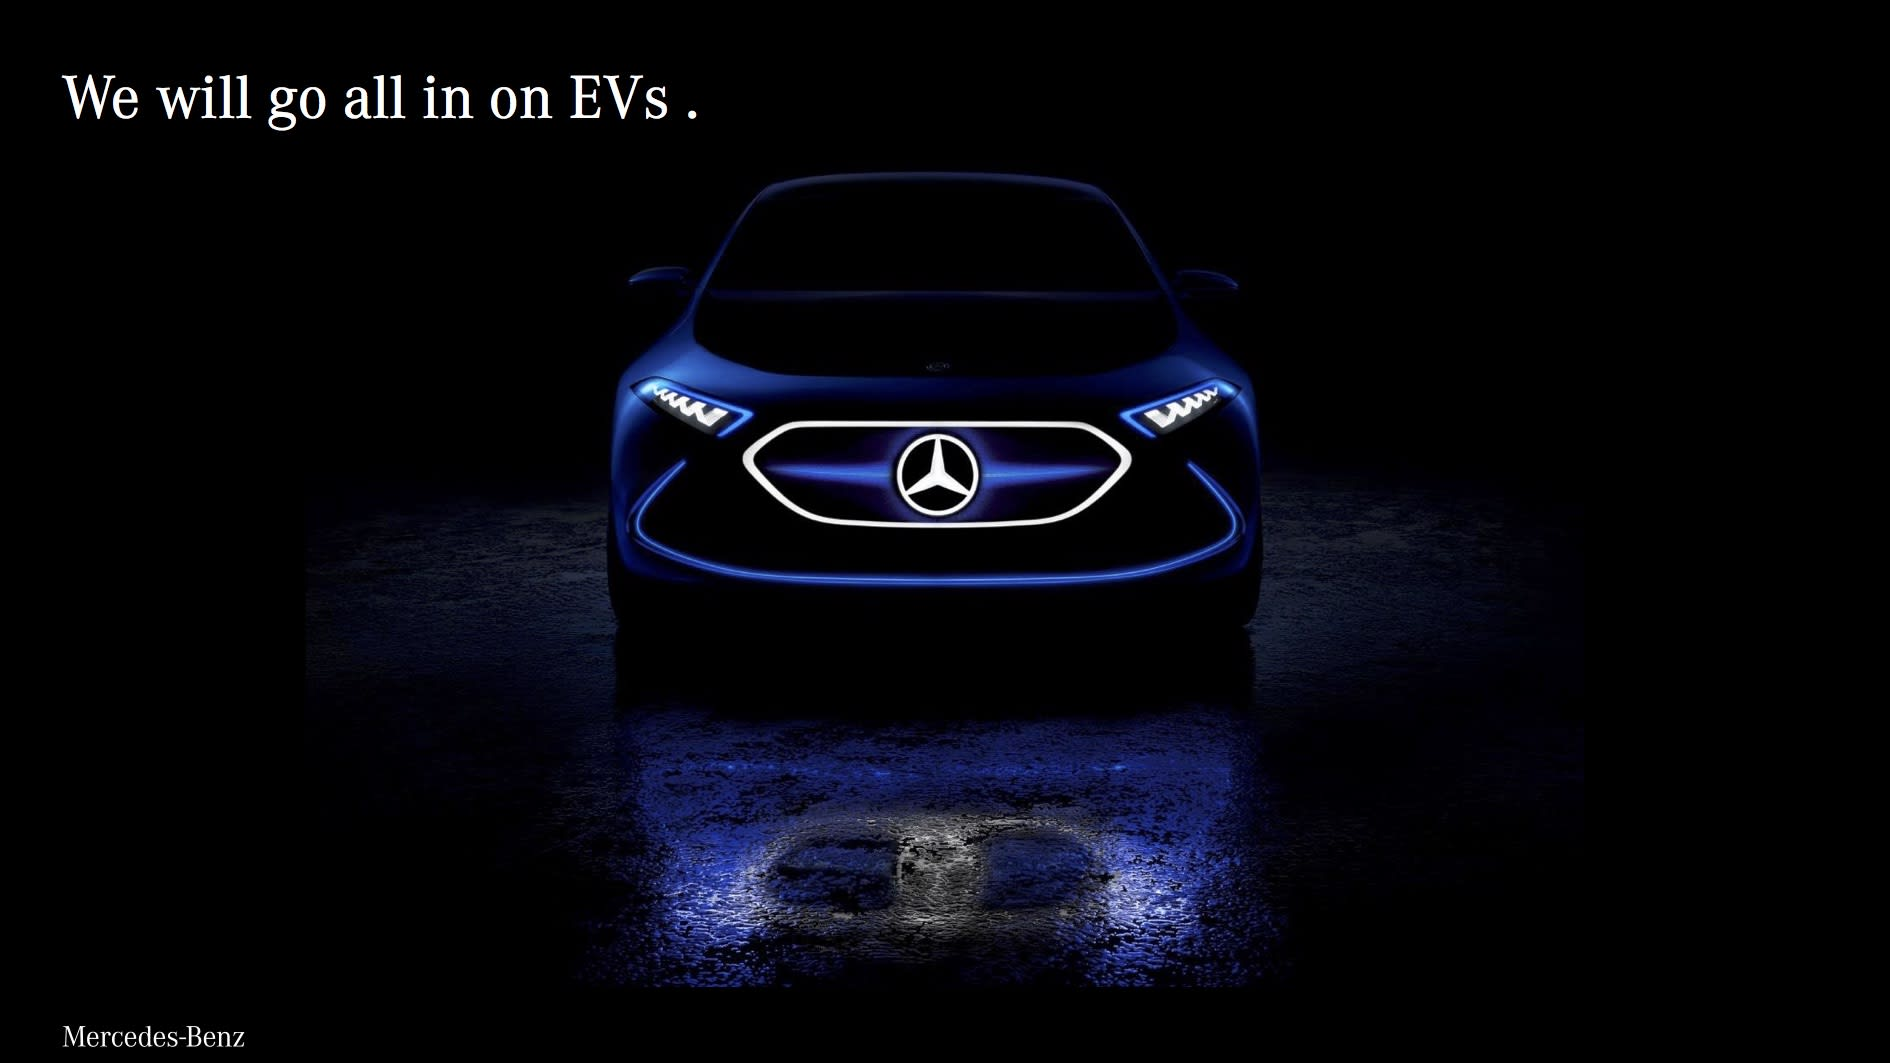 Mercedes Benz Latest Models >> Mercedes Benz Plans Electric Versions Of All Its Models By 2022